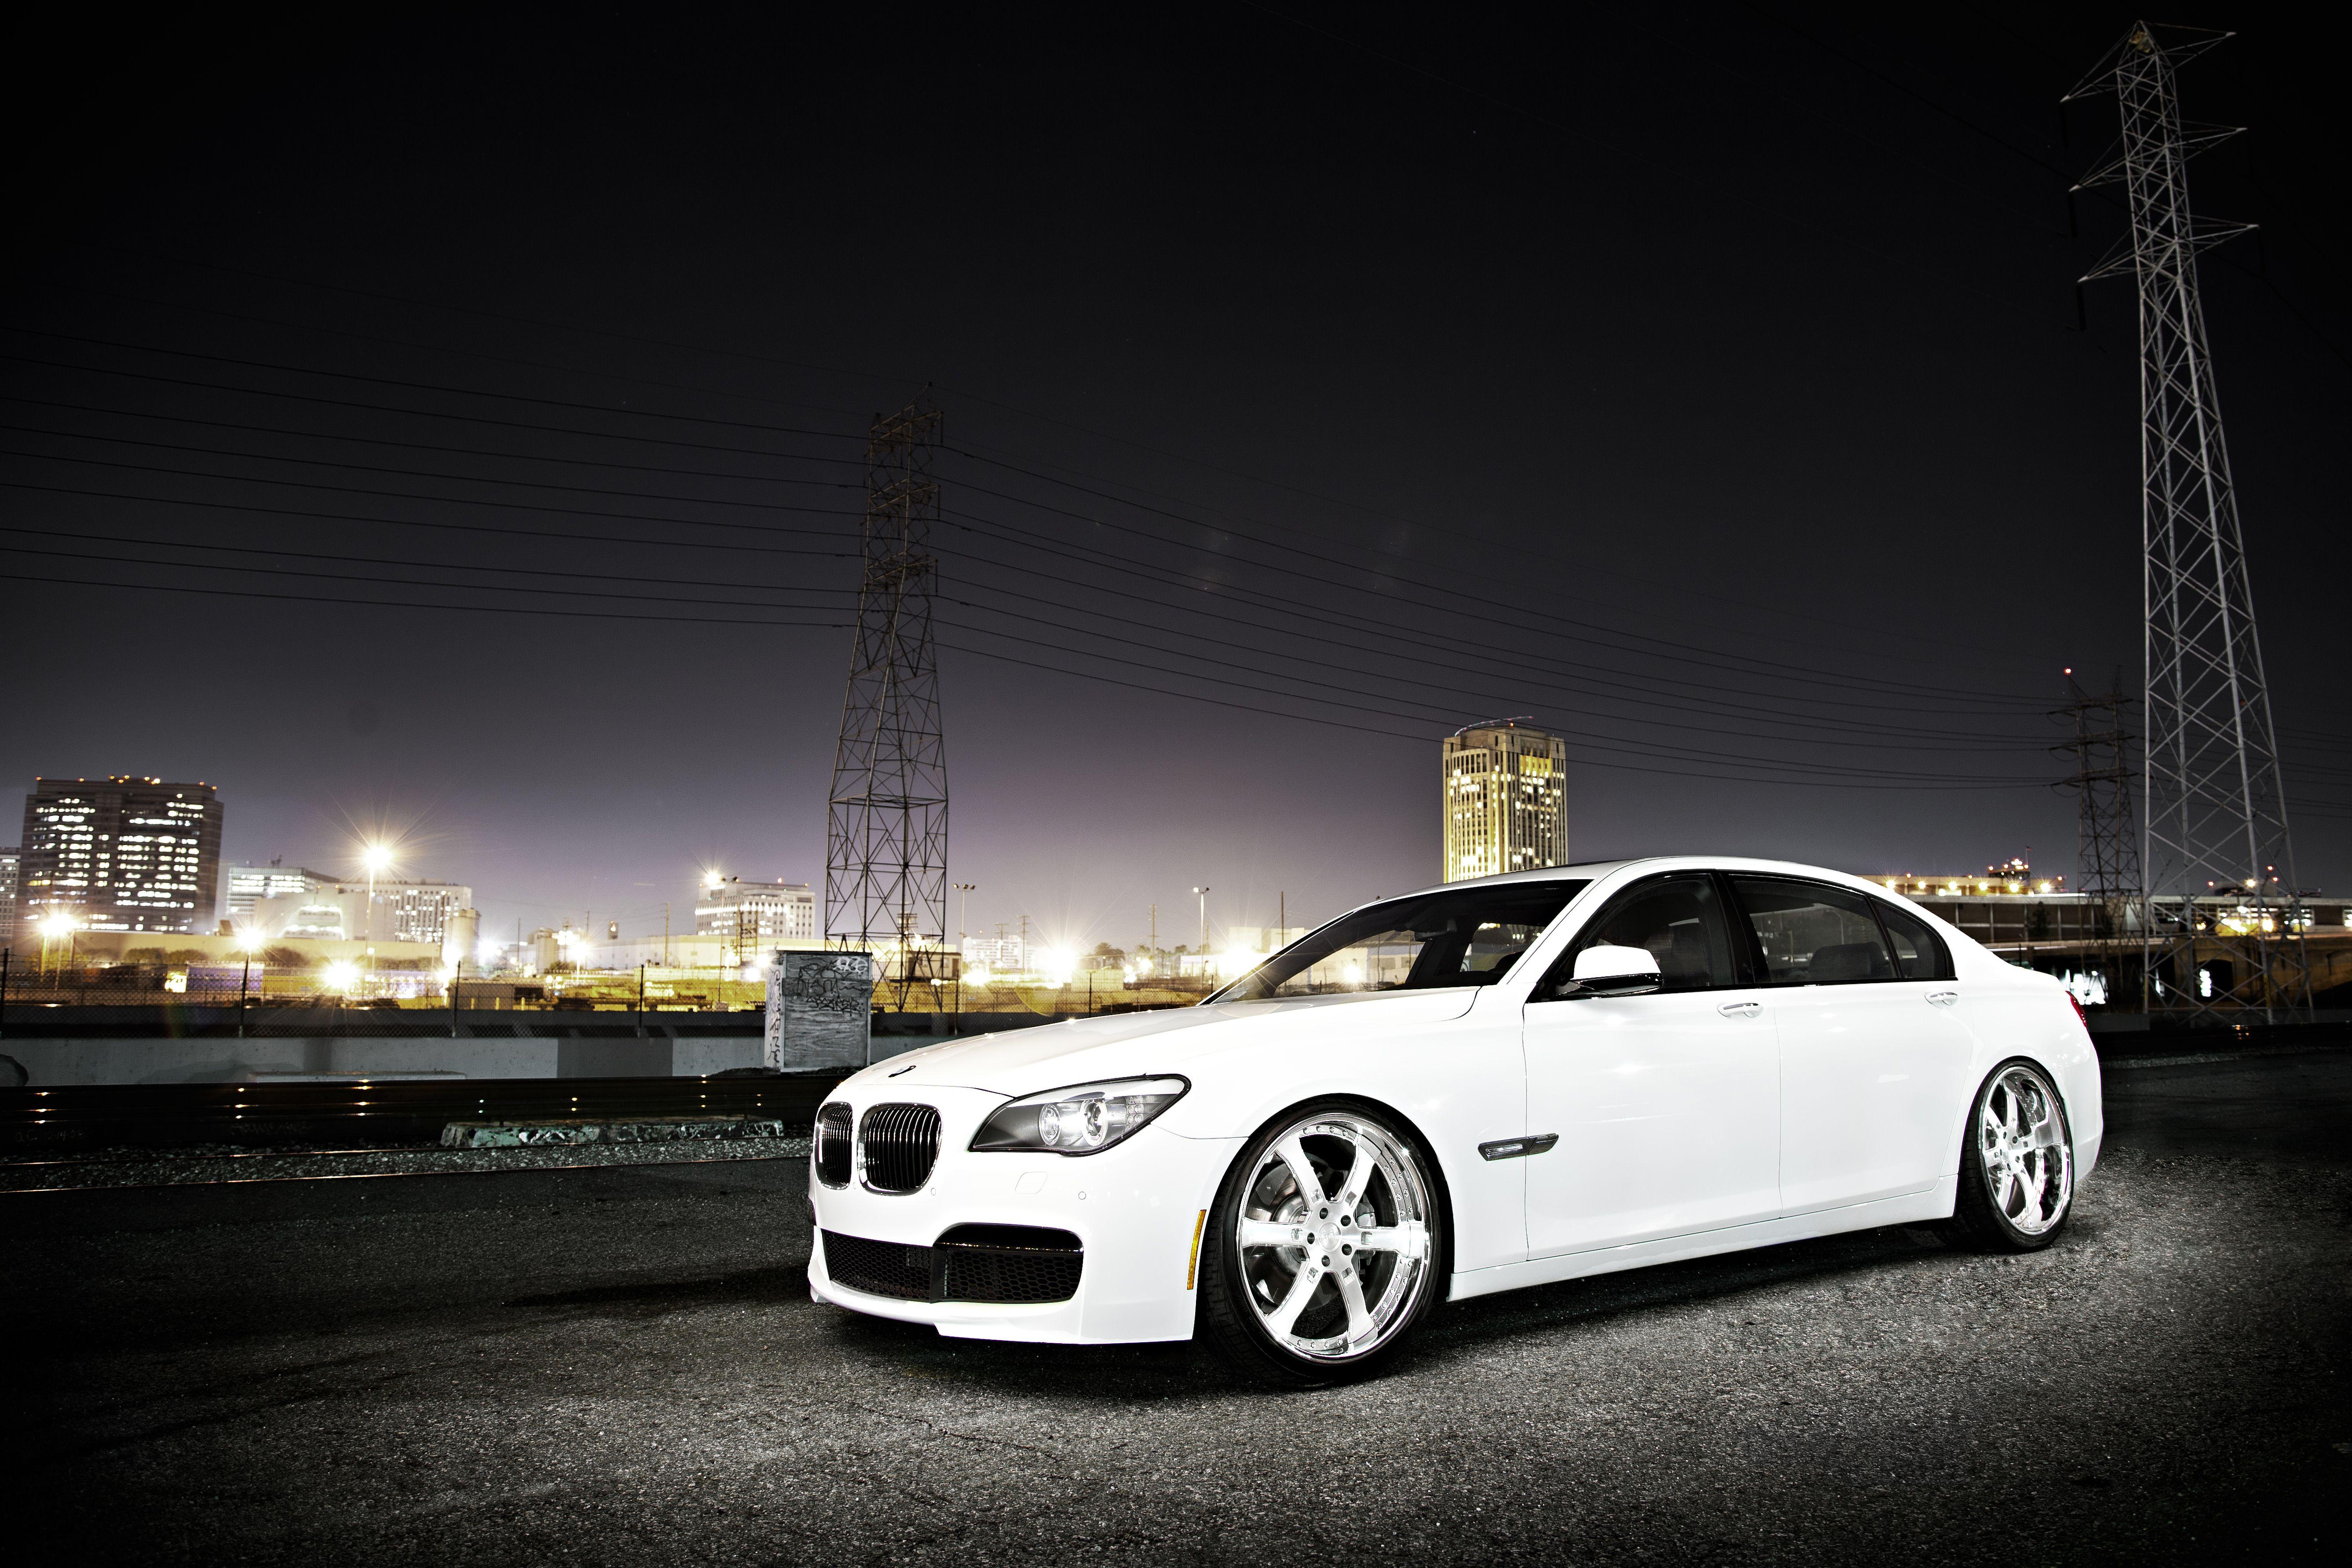 White BMW 7 series wallpapers and image